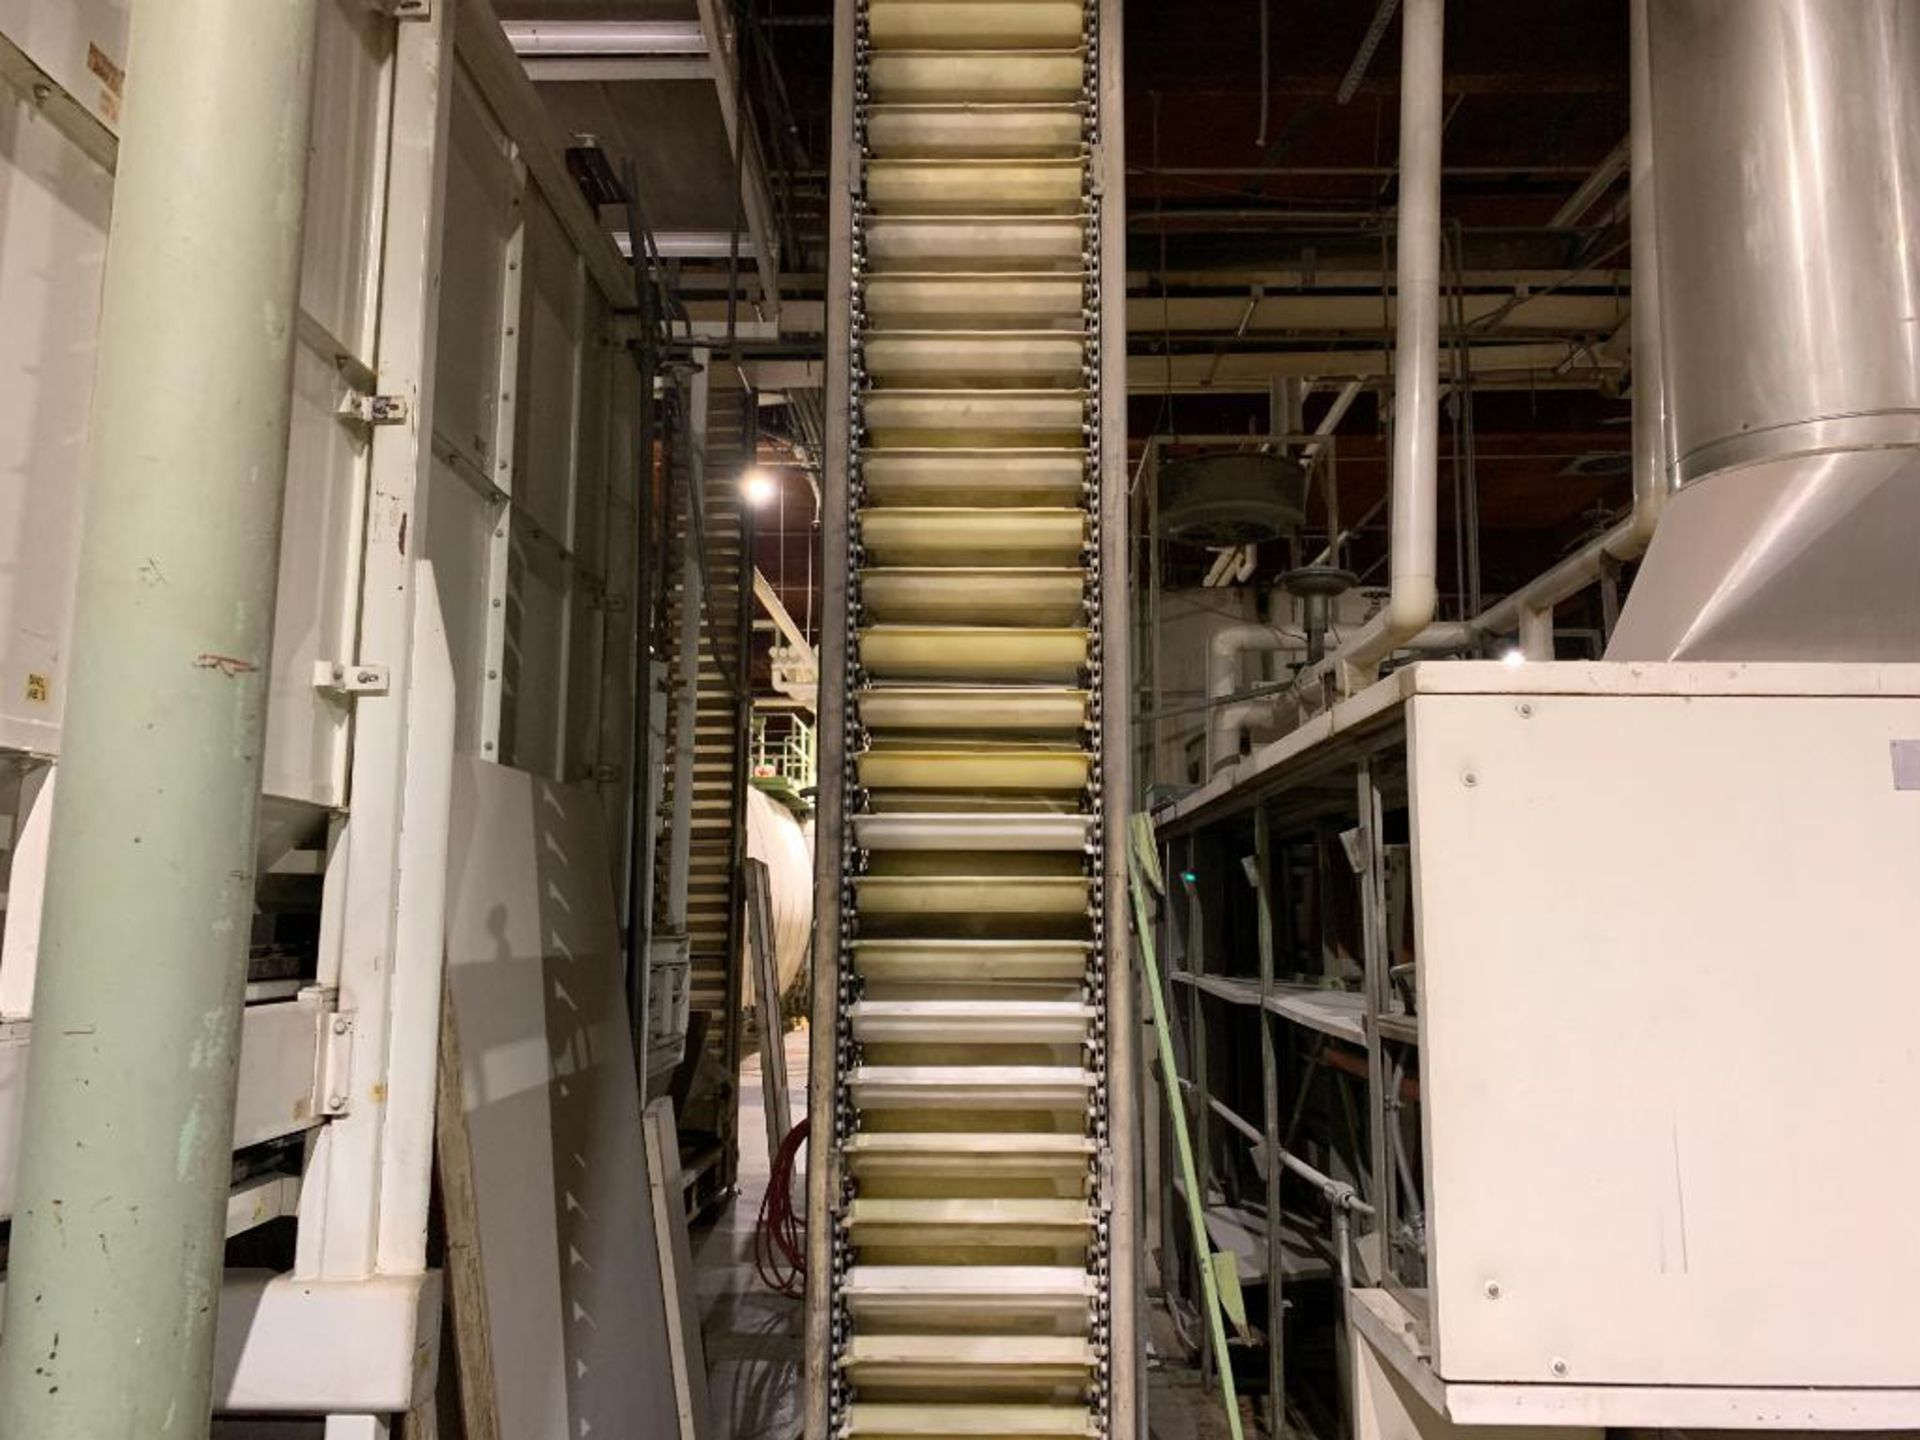 Aseeco overlapping bucket elevator, model ALS-0-18-CP - Image 3 of 12